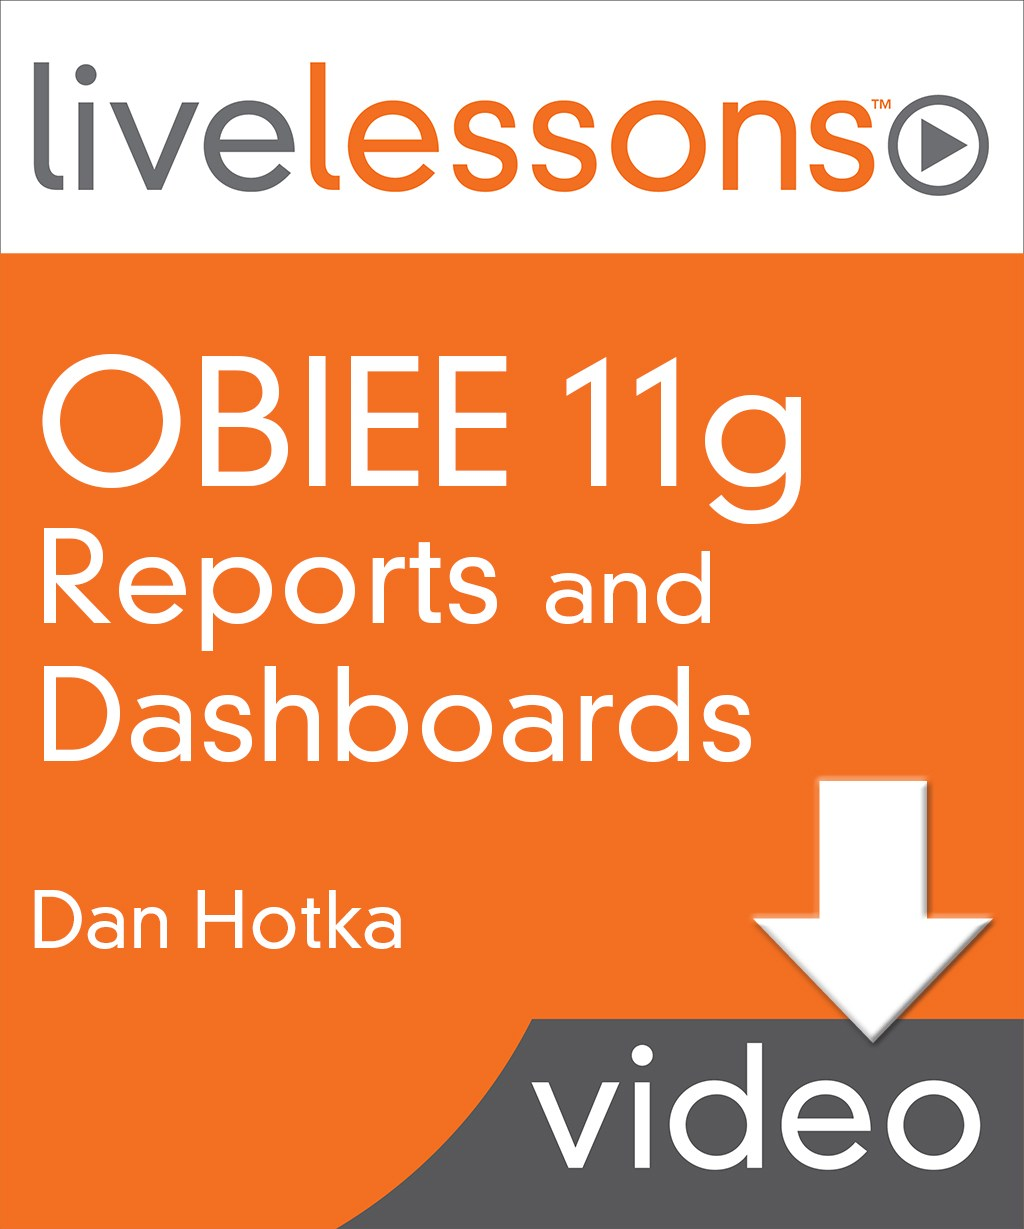 OBIEE (Oracle Business Intelligence Enterprise Edition) 11g Reports and Dashboards LiveLessons